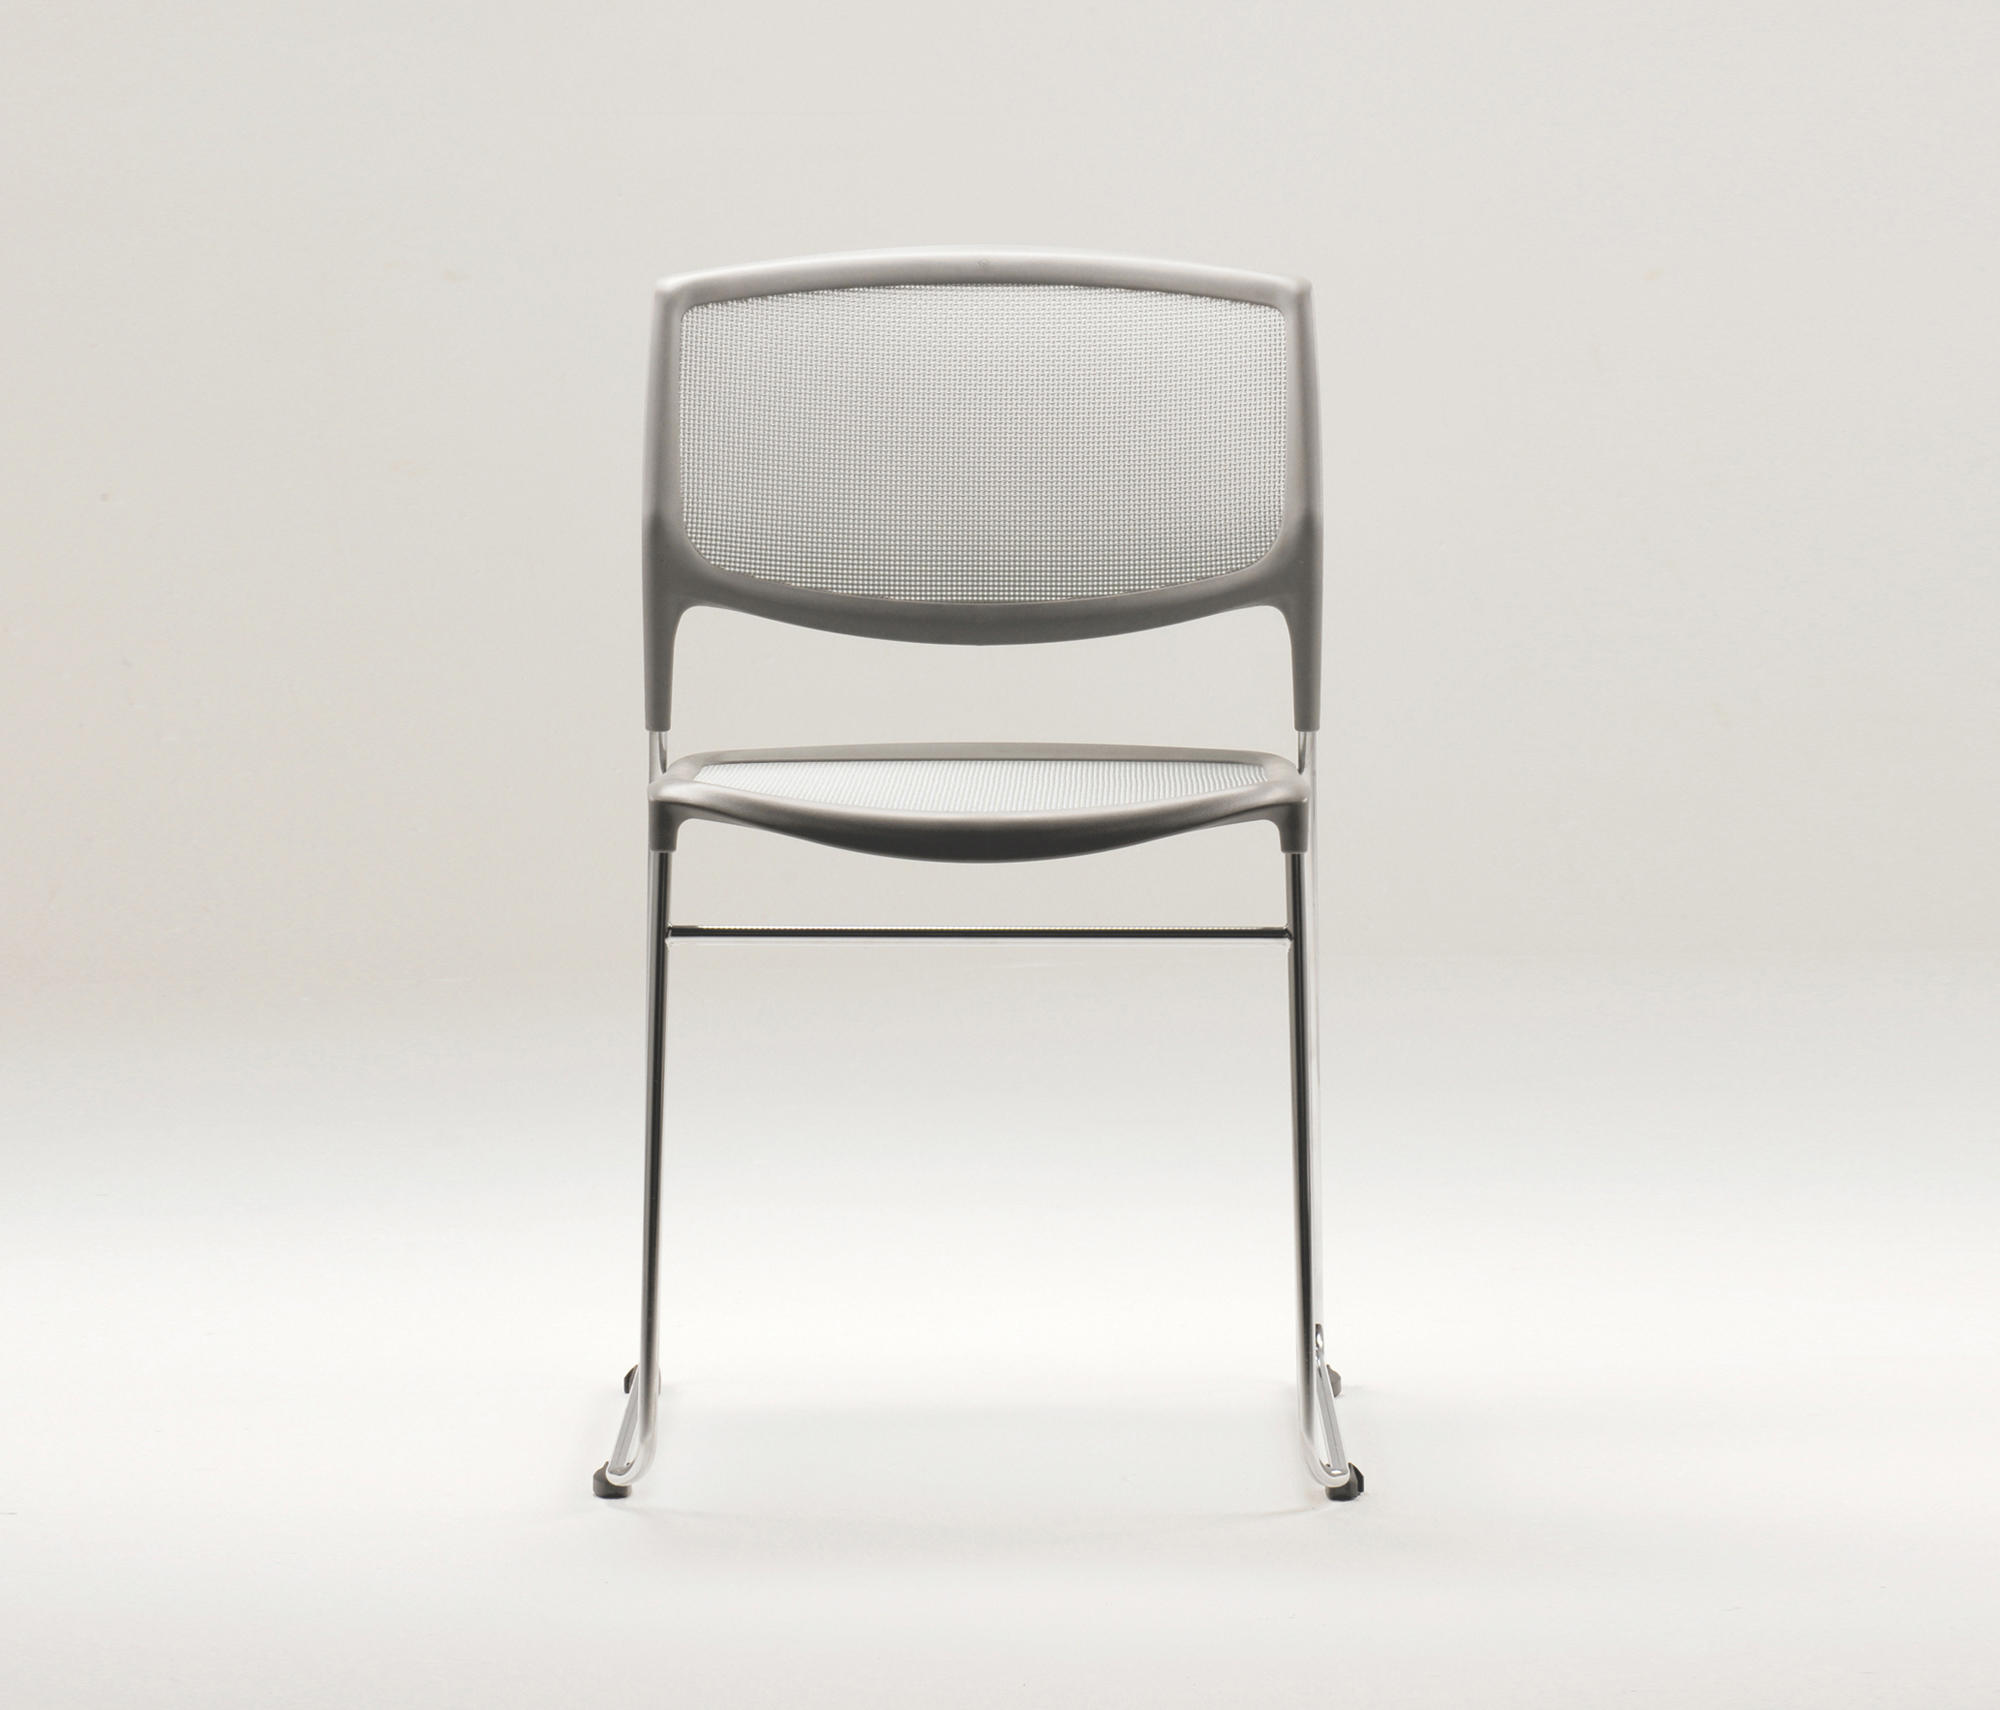 Ki Chairs Daylight Stack Chair Chairs From Ki Architonic